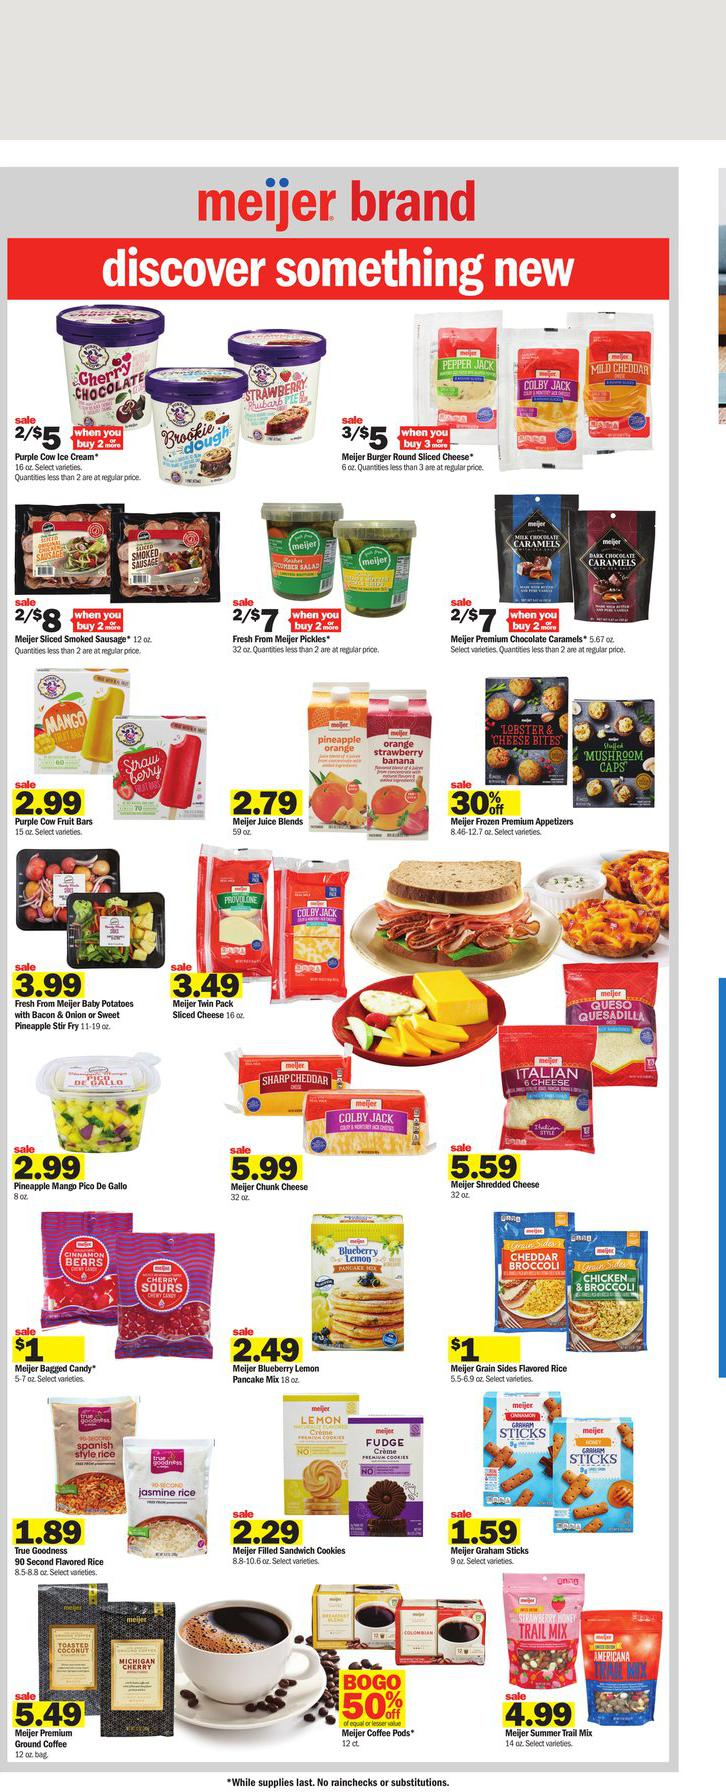 06.06.2021 Meijer ad 8. page